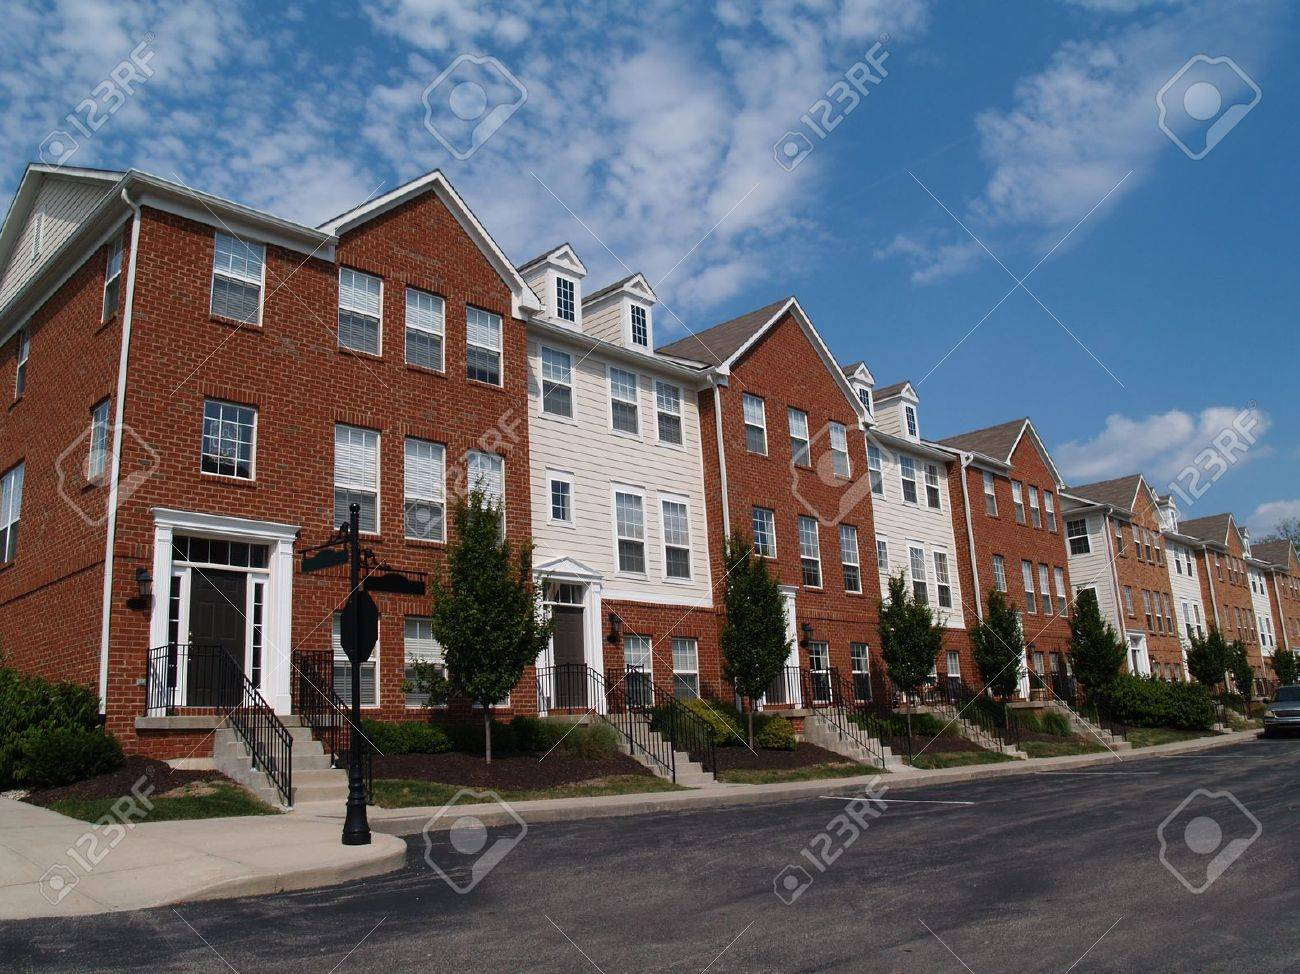 A row of brick condos or townhouses beside a street. - 5294815